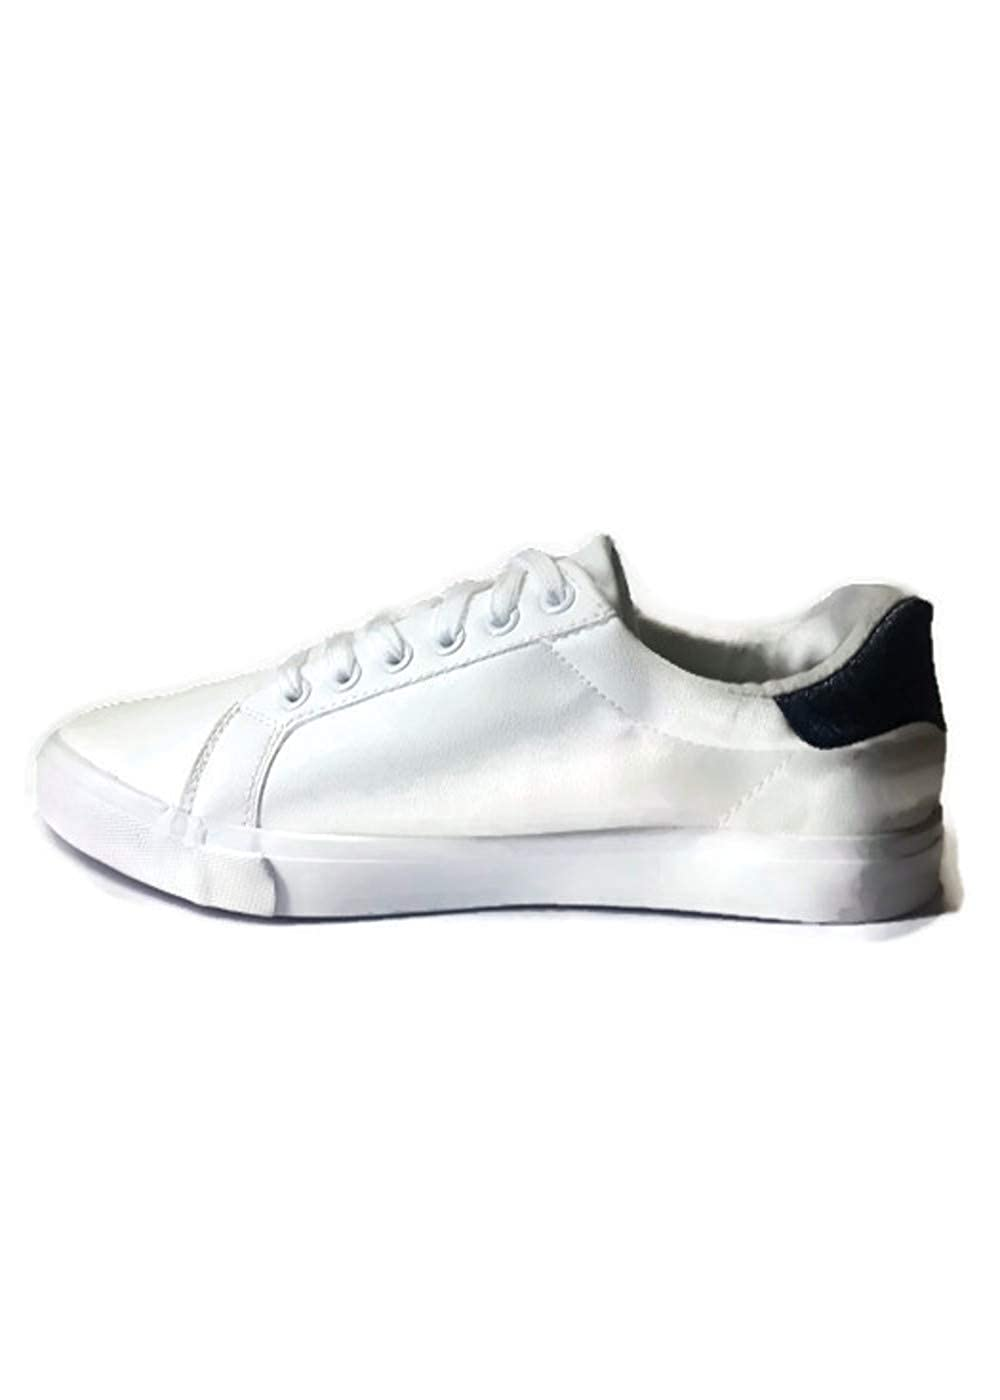 Pineberry White, Casual, Canvas, Clean